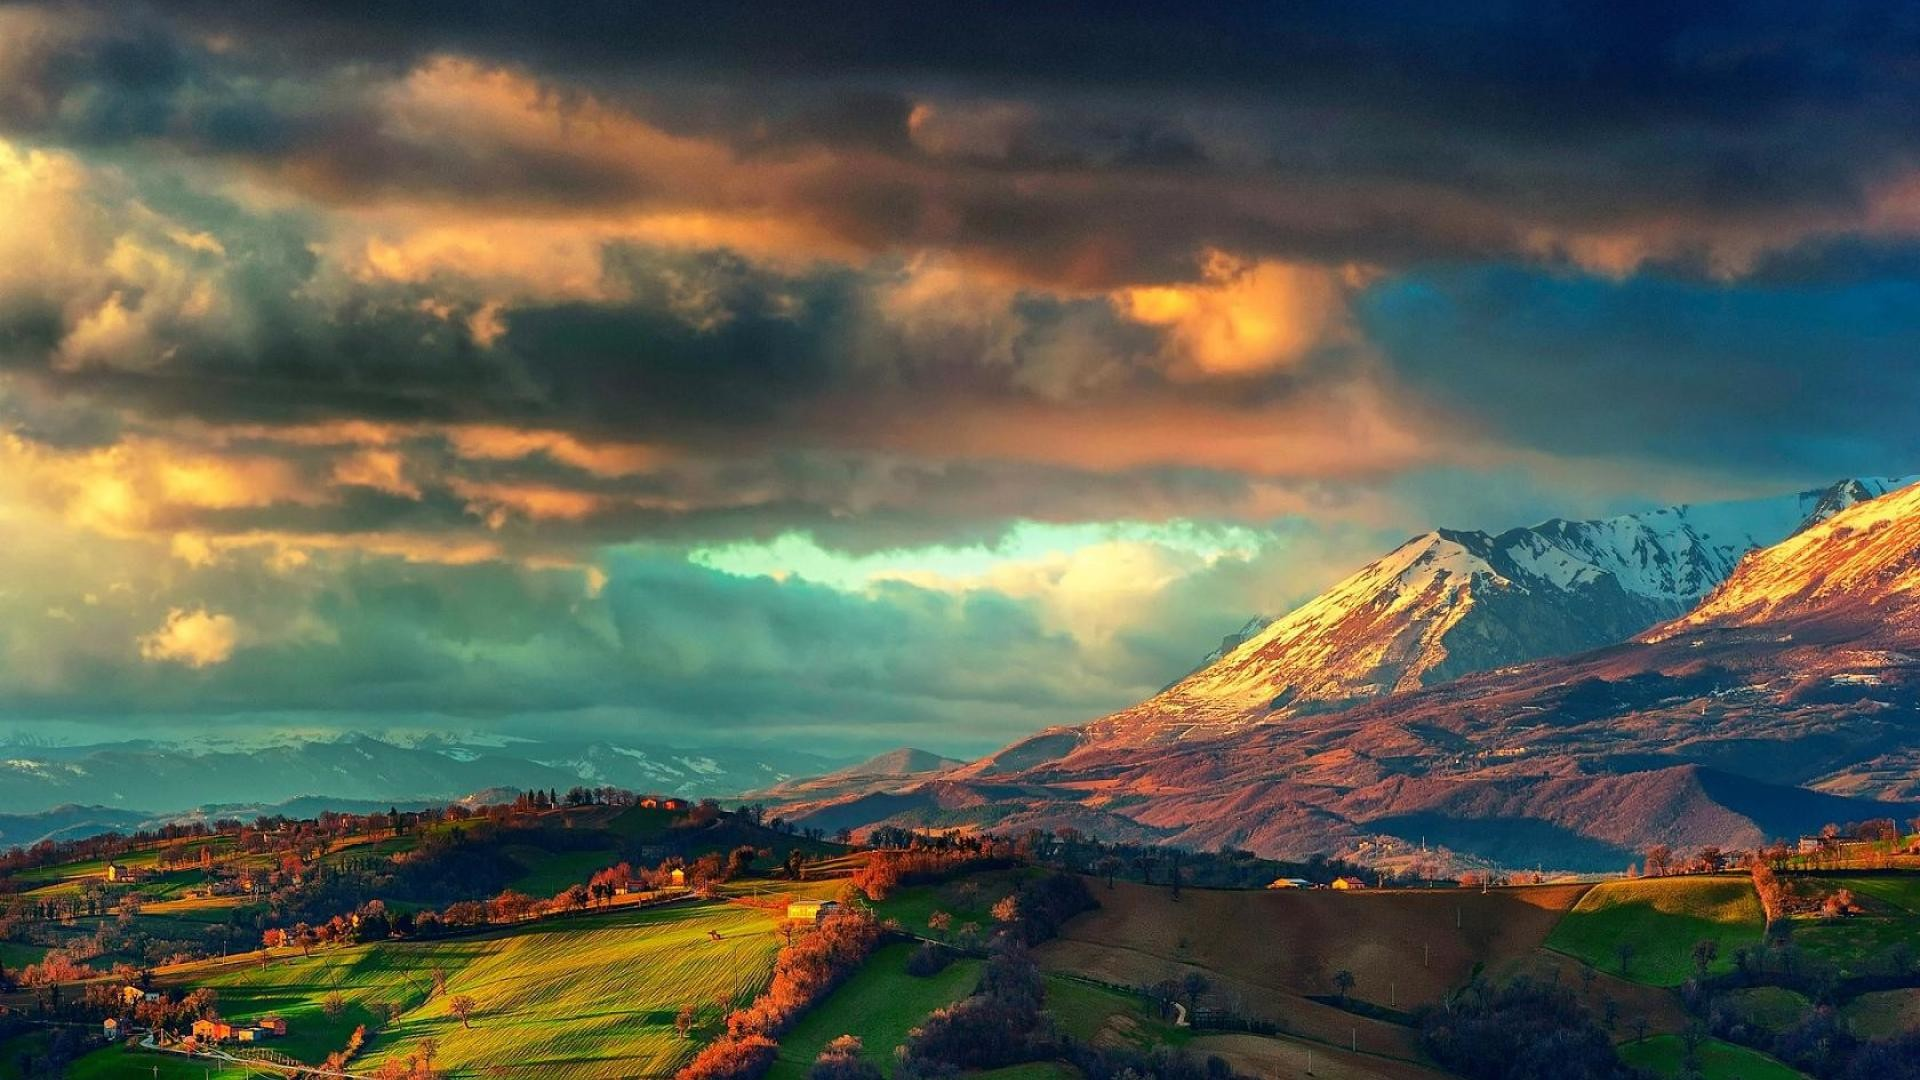 Peaceful Wallpaper High Quality …